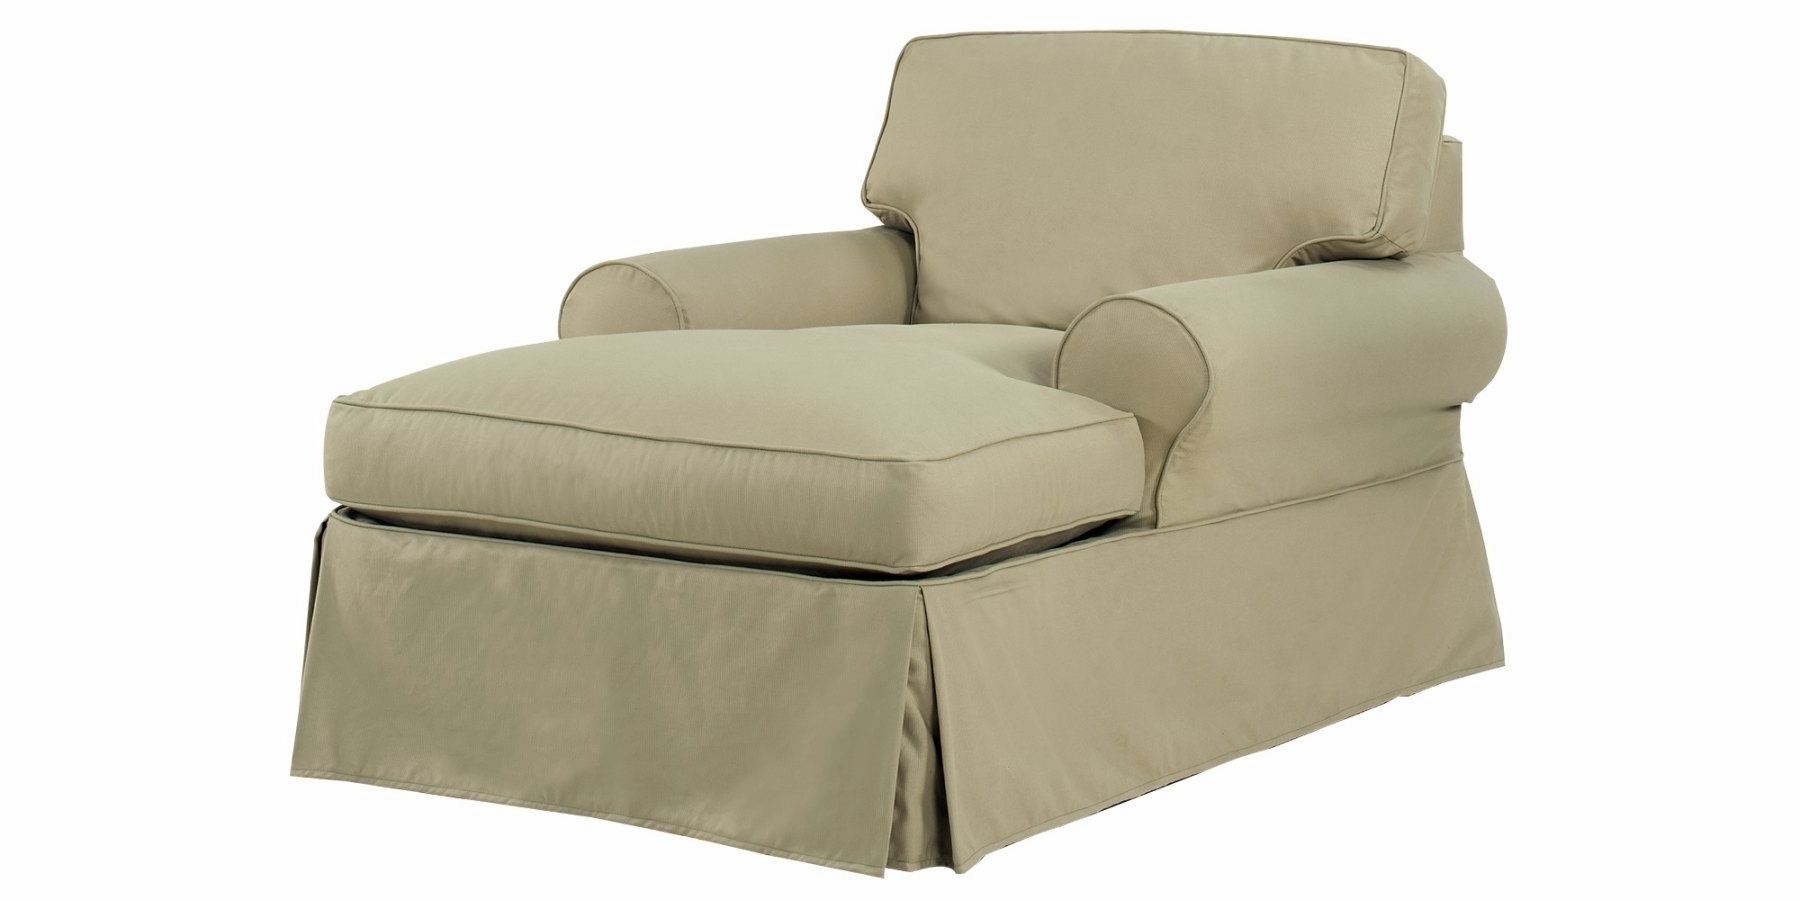 Most Recent Chaise Lounge Chairs With Two Arms For Chaise Lounge Chairs Two Arms • Lounge Chairs Ideas (View 11 of 15)